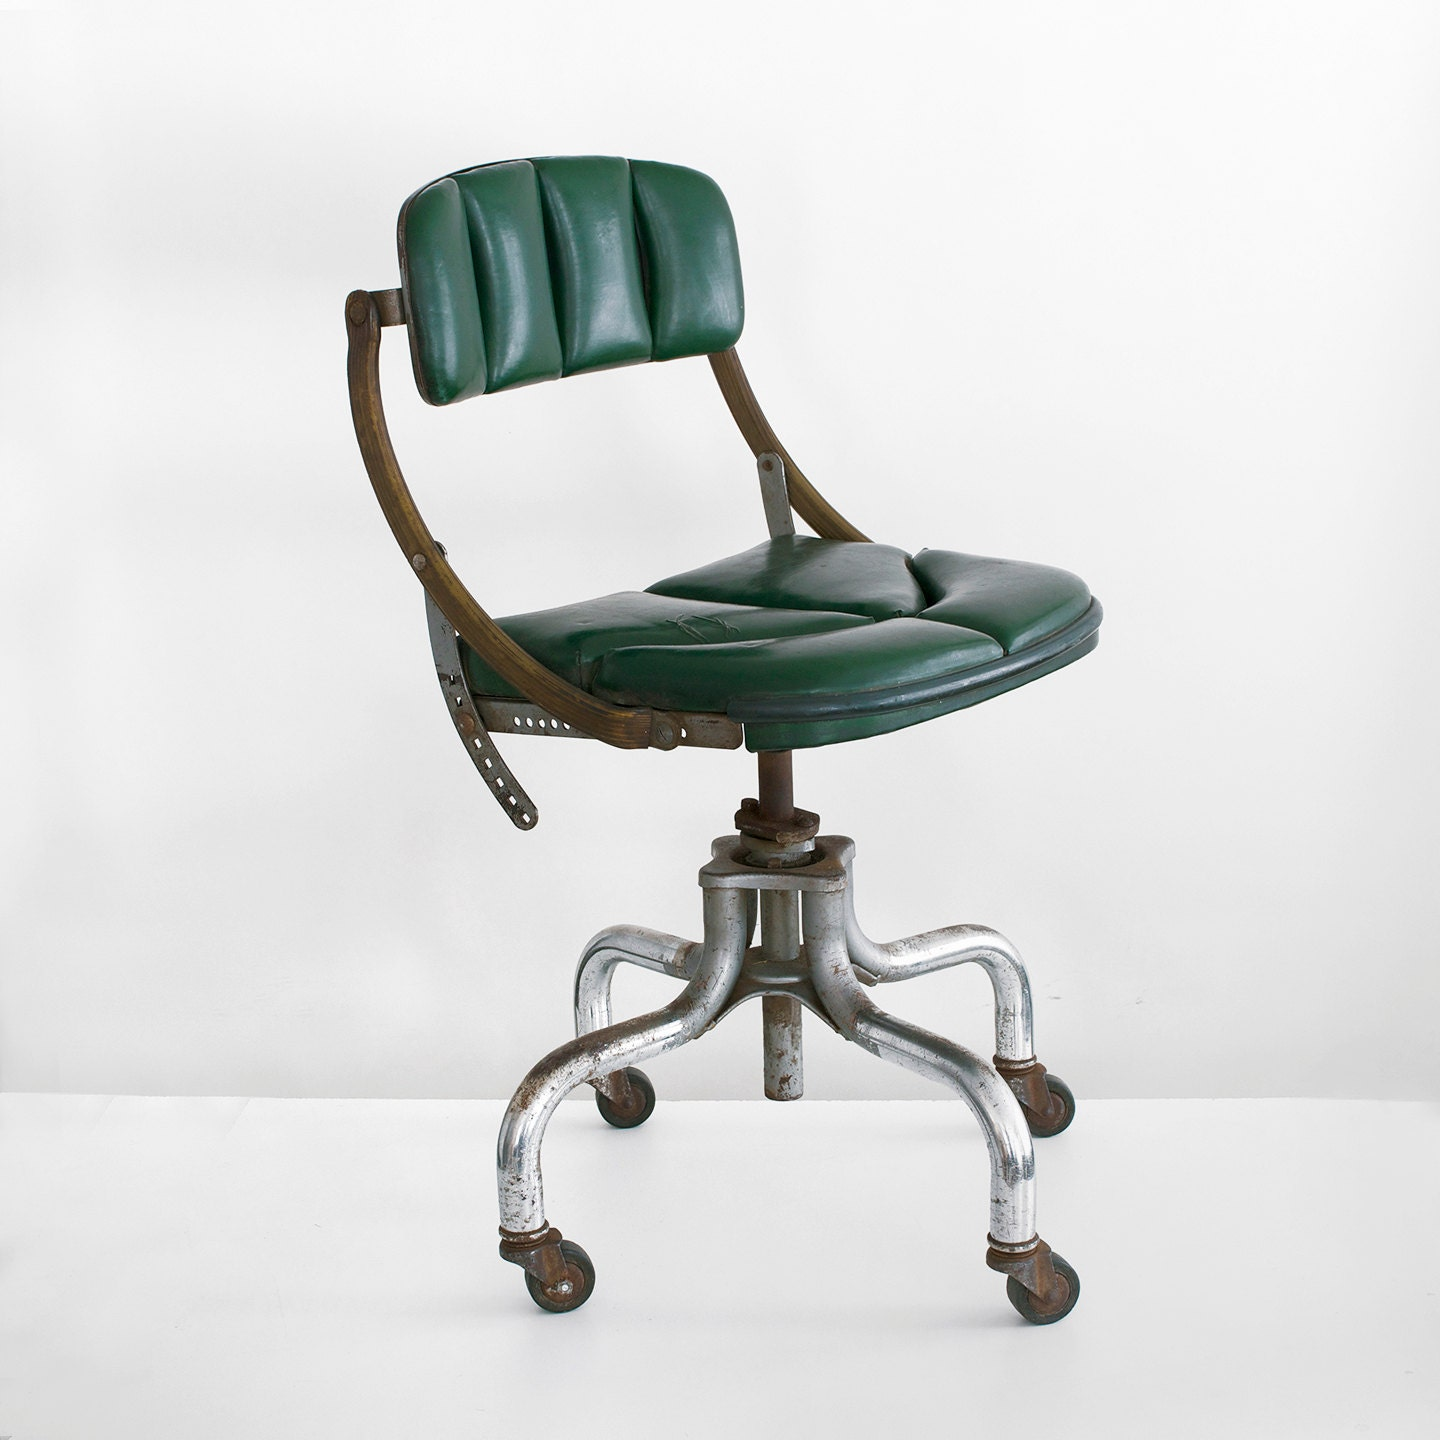 Chairs And More: Vintage Office Chair Vintage Do/more Chair Industrial